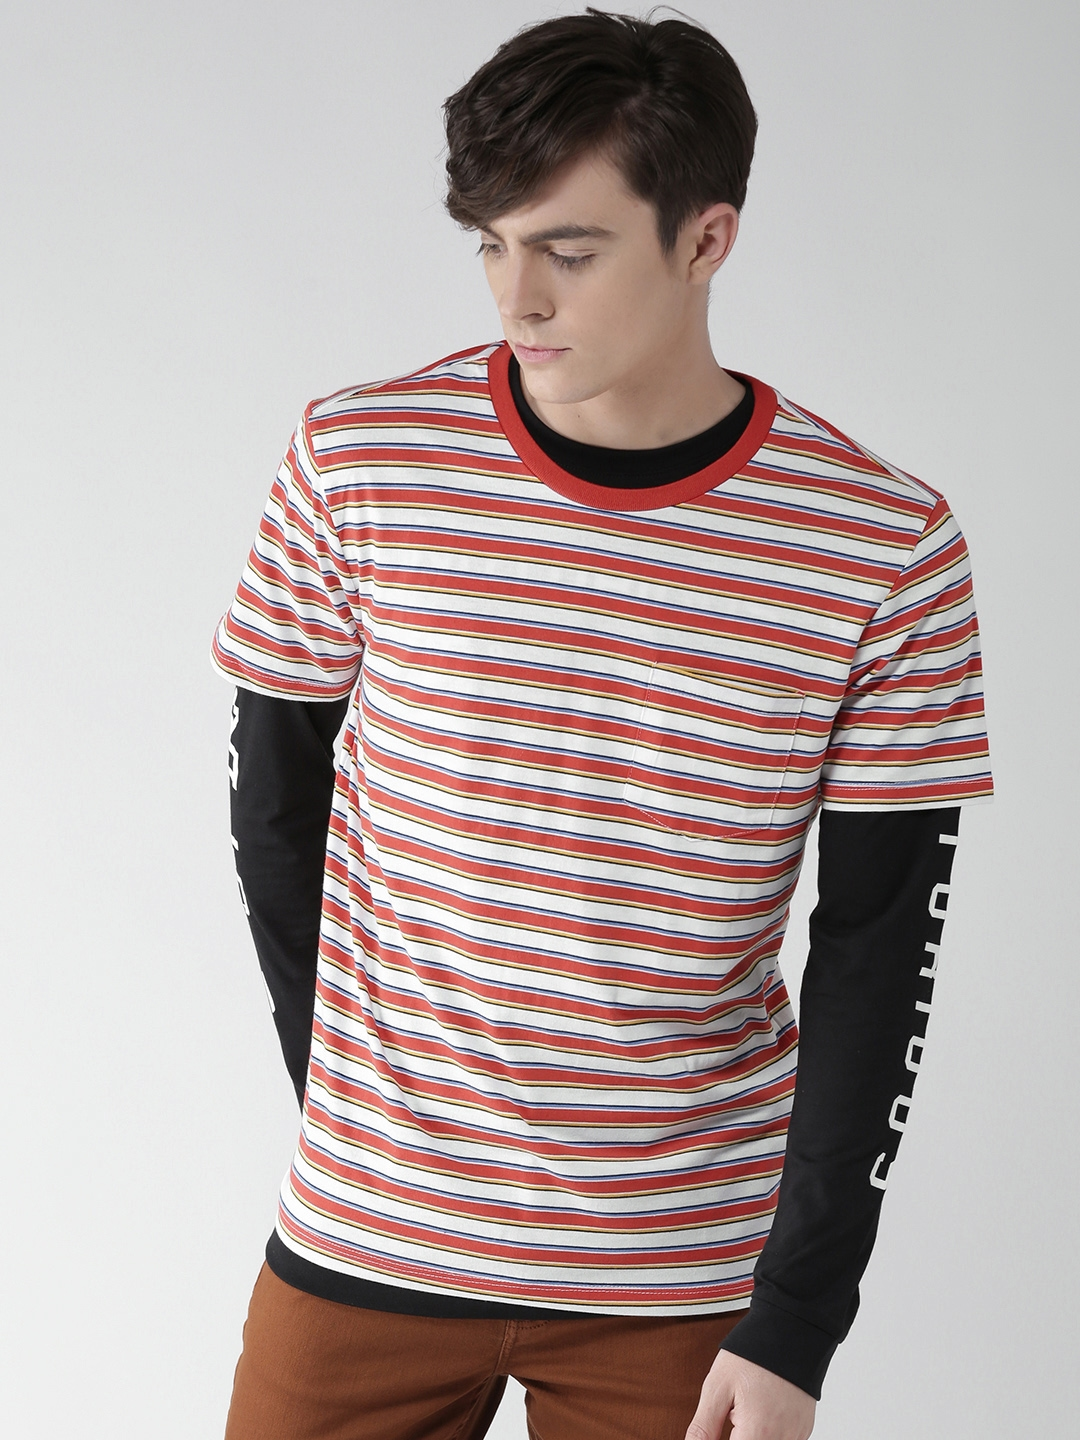 468ed394a0de Buy FOREVER 21 Men White & Red Striped Round Neck T Shirt - Tshirts ...